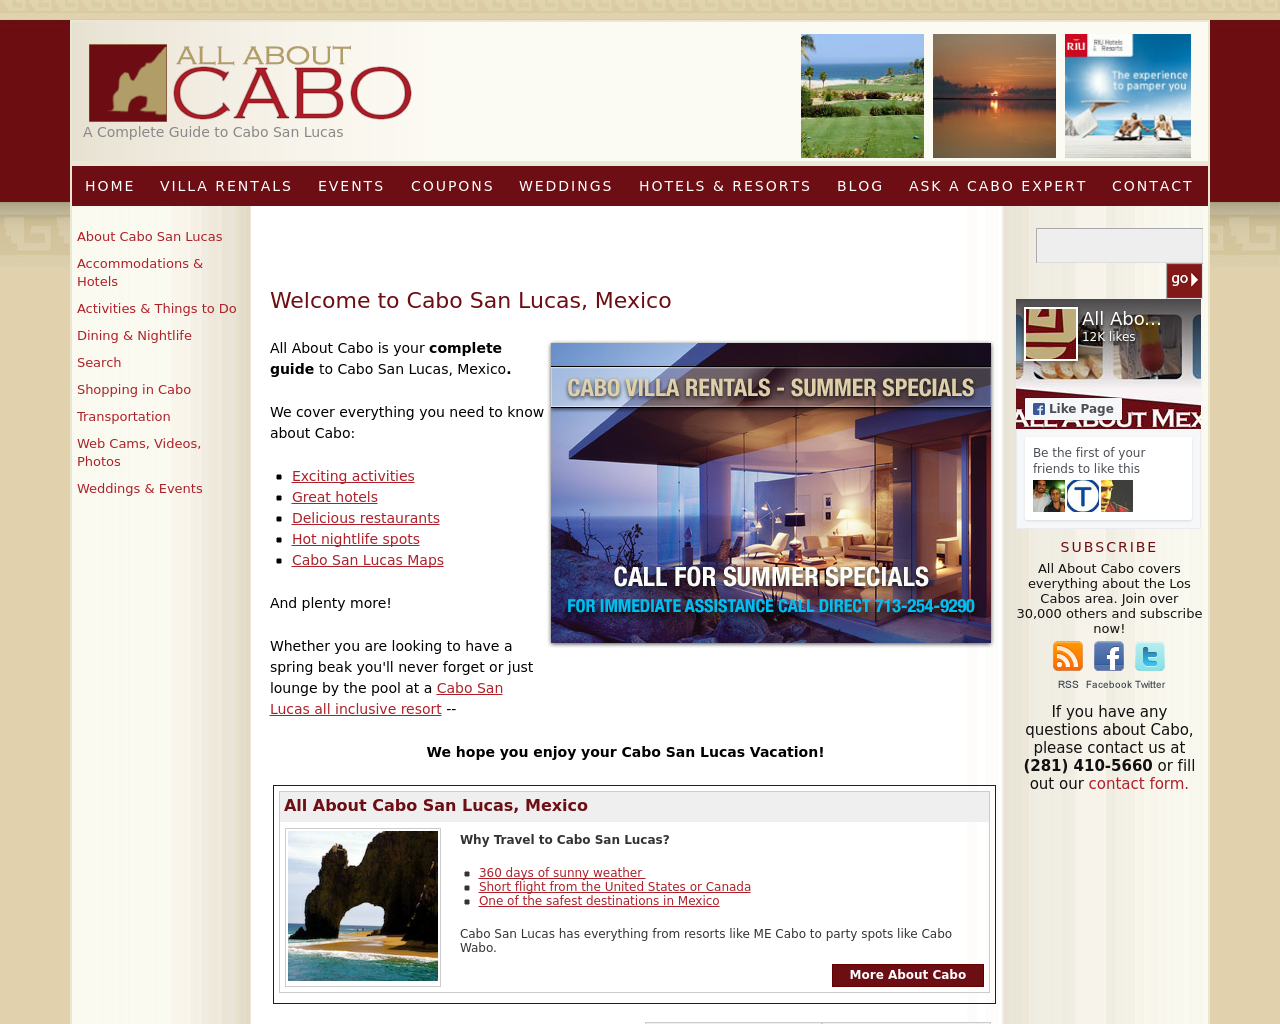 All-About-Cabo-Advertising-Reviews-Pricing